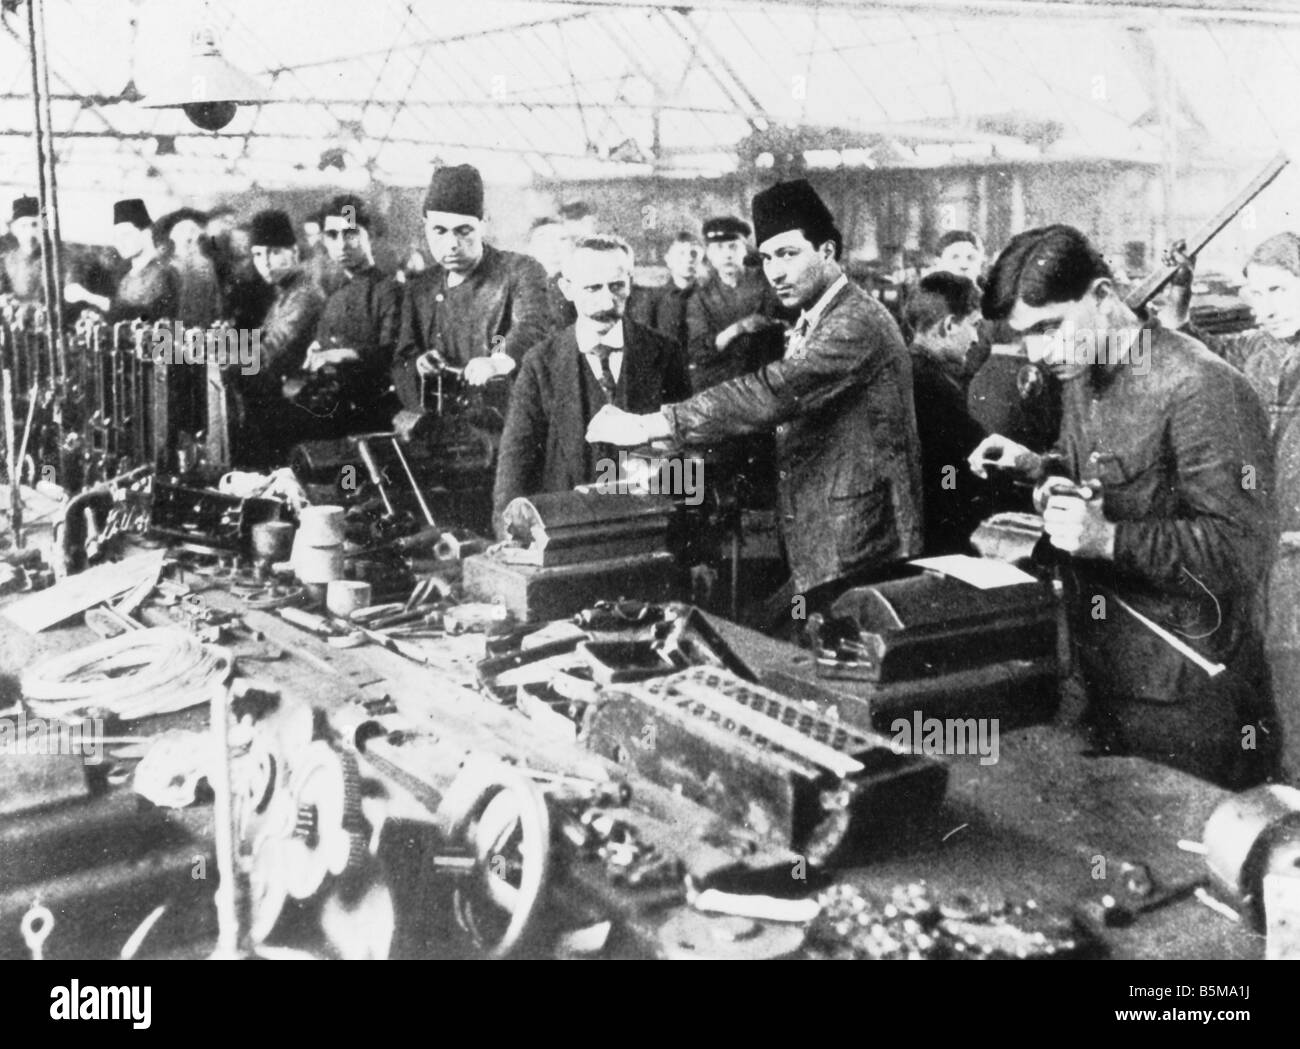 2 G111 G1 1917 E Turkish factory workers Berlin 1917 Work Gastarbeiters Turkish workers at the AEG transformer plant - Stock Image